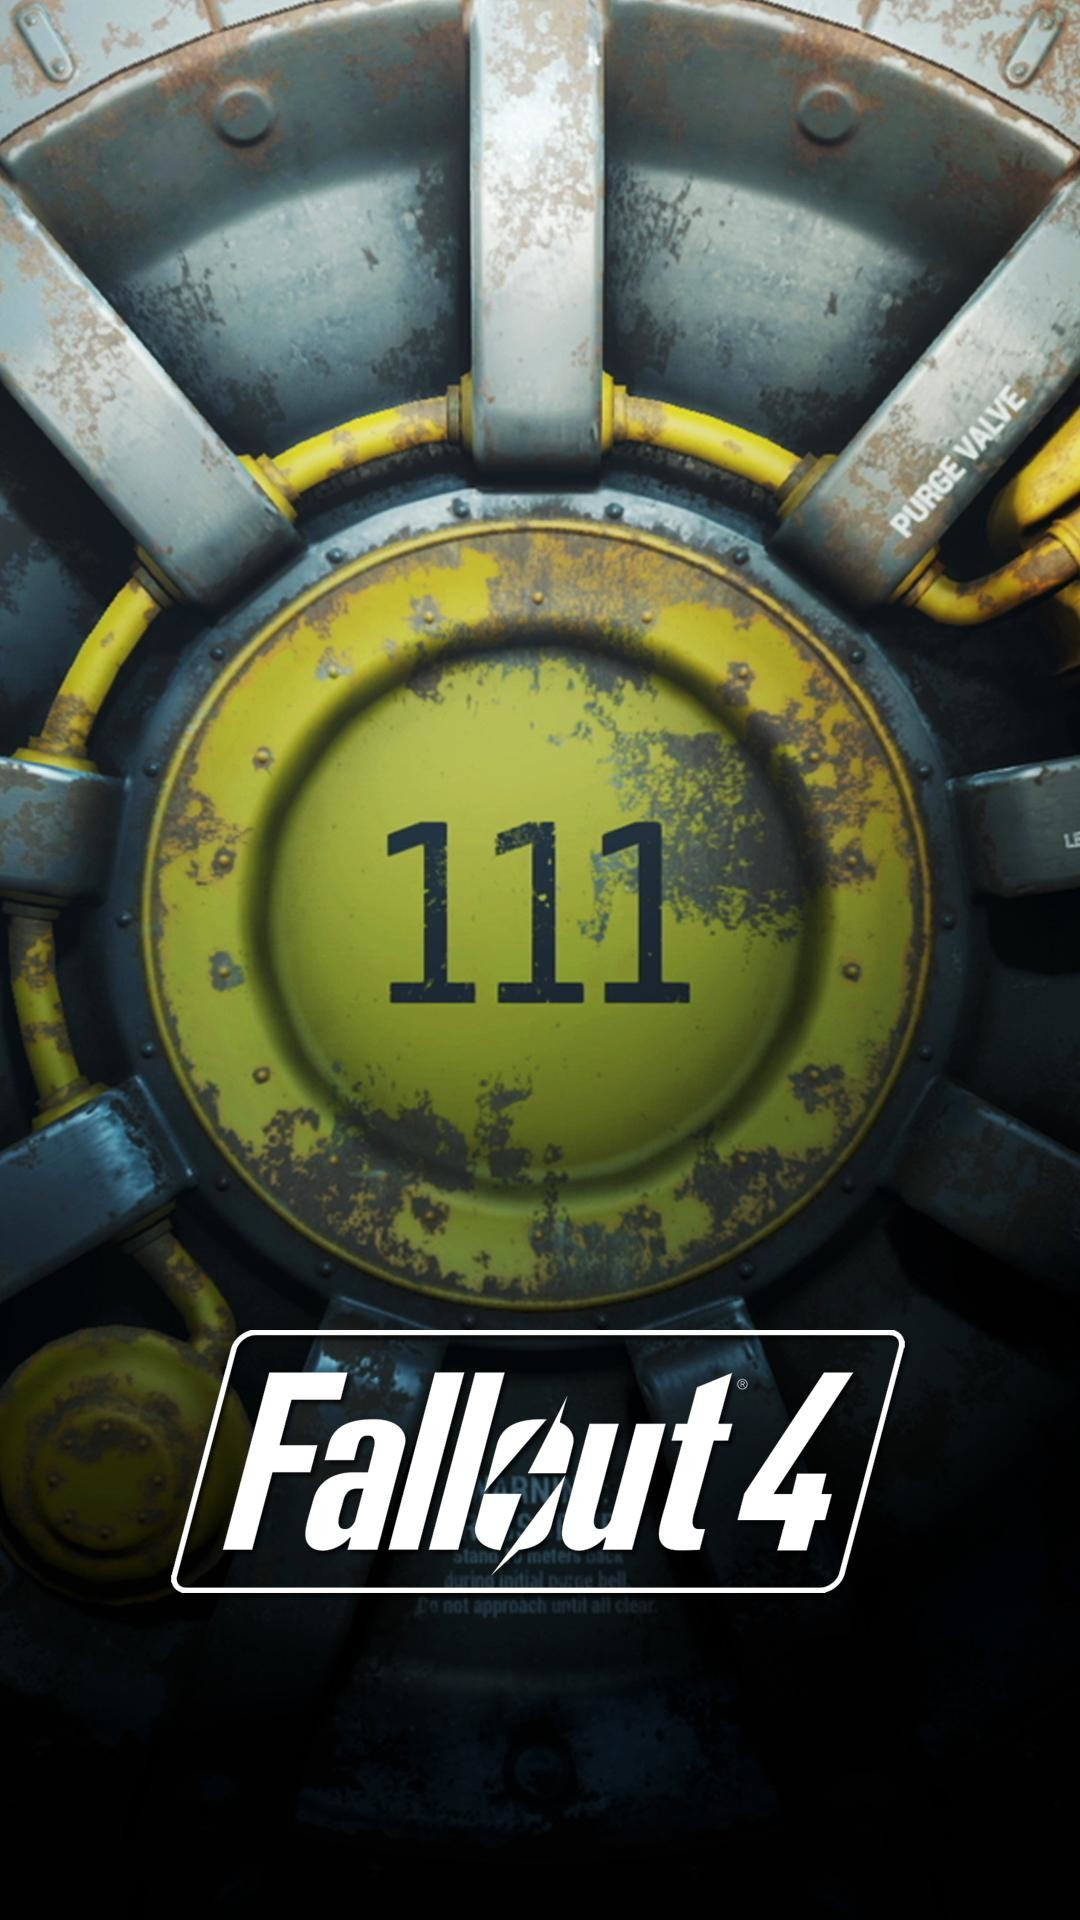 Fallout 4 nieuws: Prachtige iPhone- en Android wallpapers voor Fallout .